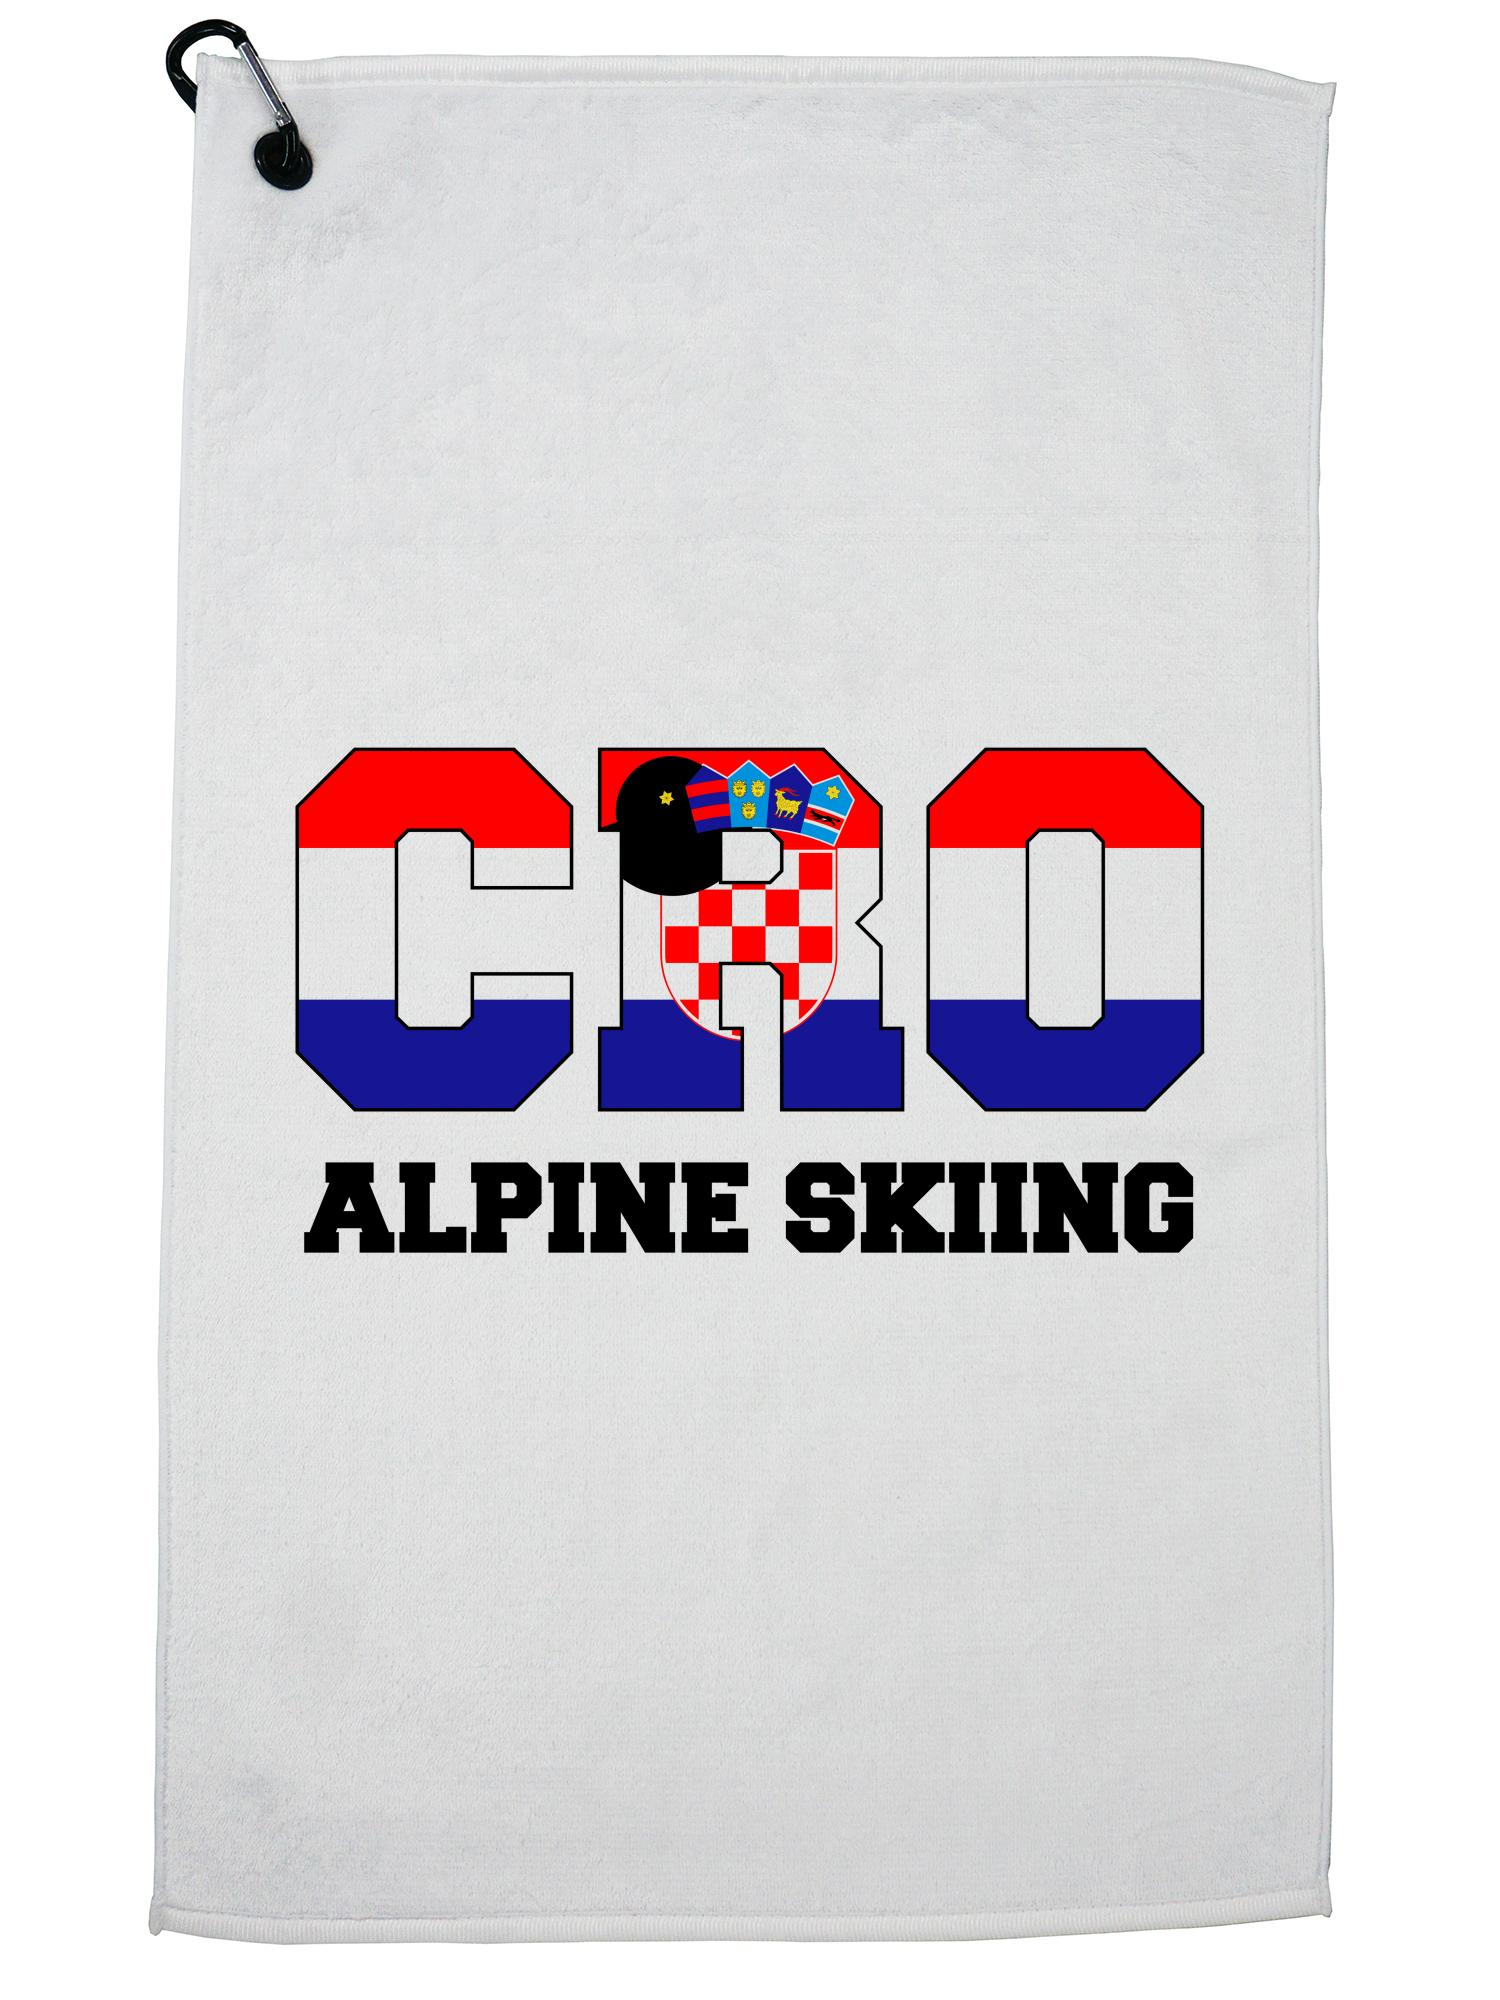 Croatian Alpine Skiing Winter Olympic -CRO Flag Golf Towel with Carabiner Clip by Hollywood Thread